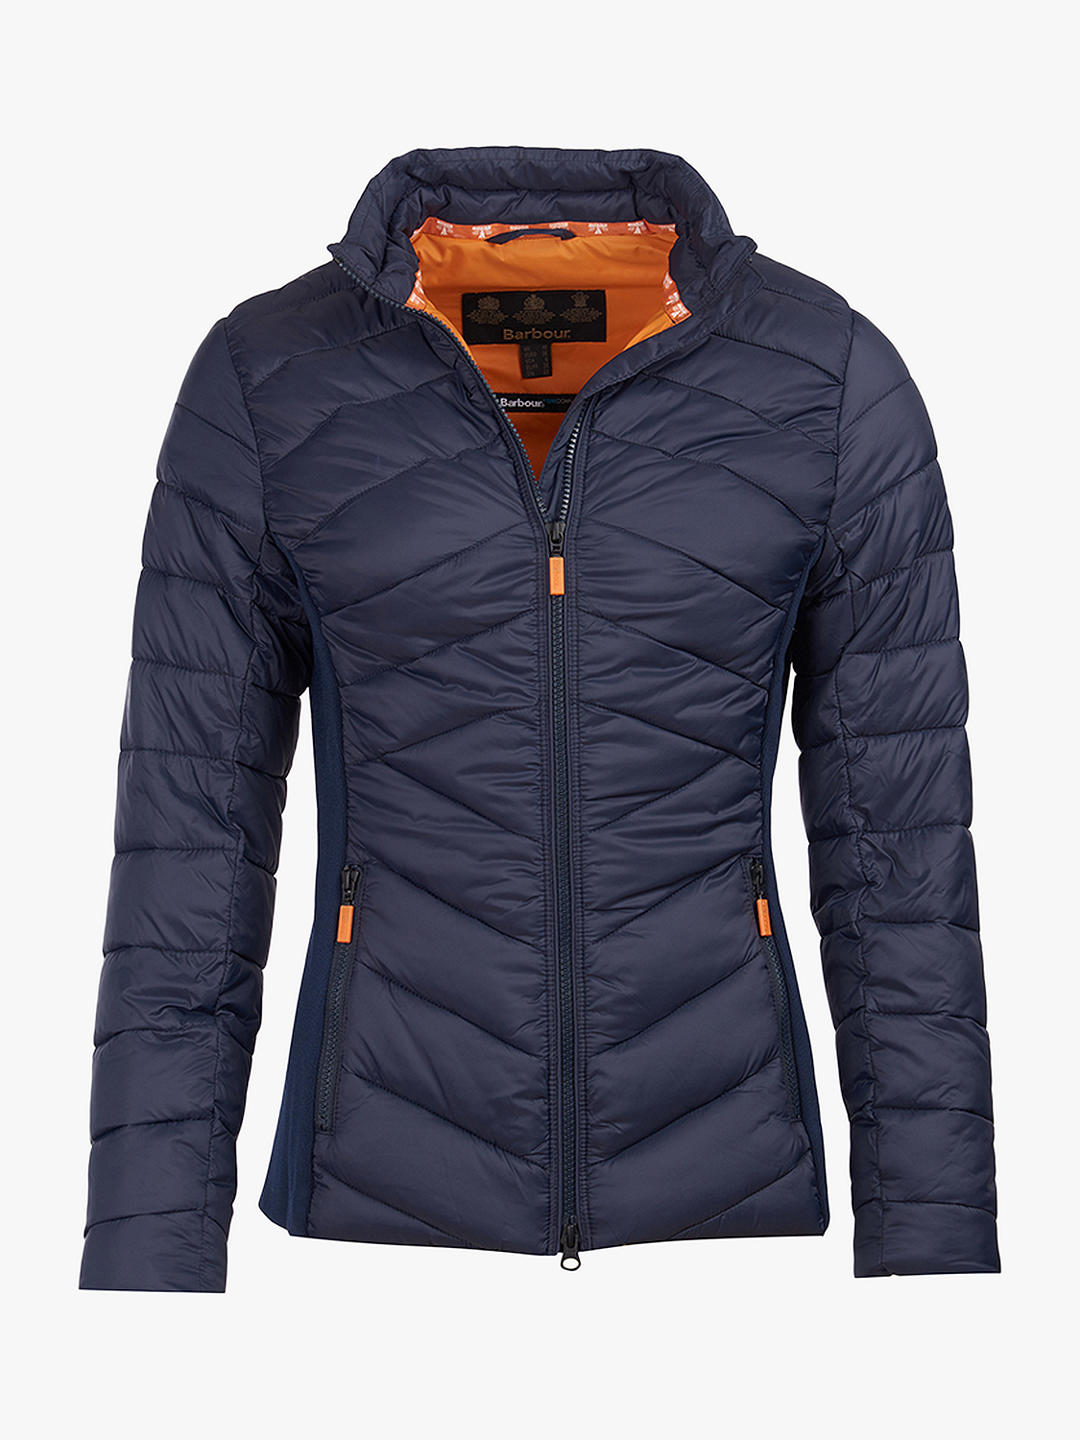 Barbour Longshore Quilted Jacket Navy/Marigold-Kate Middleton